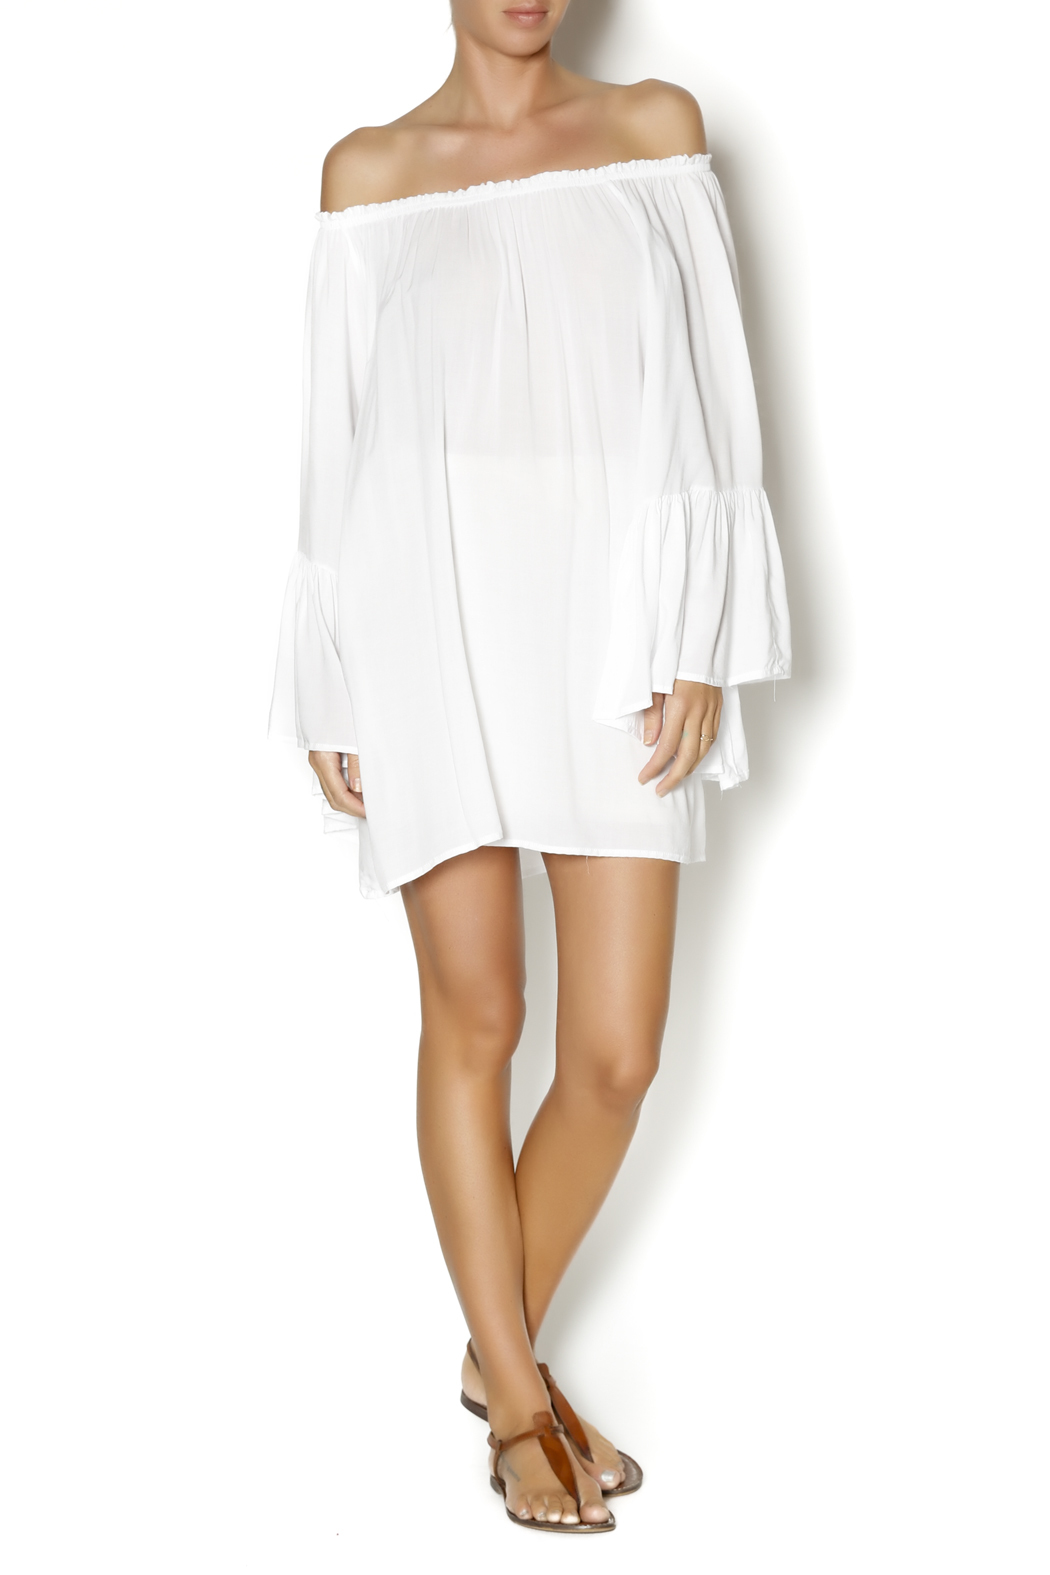 Elan White Boho Top - Front Full Image